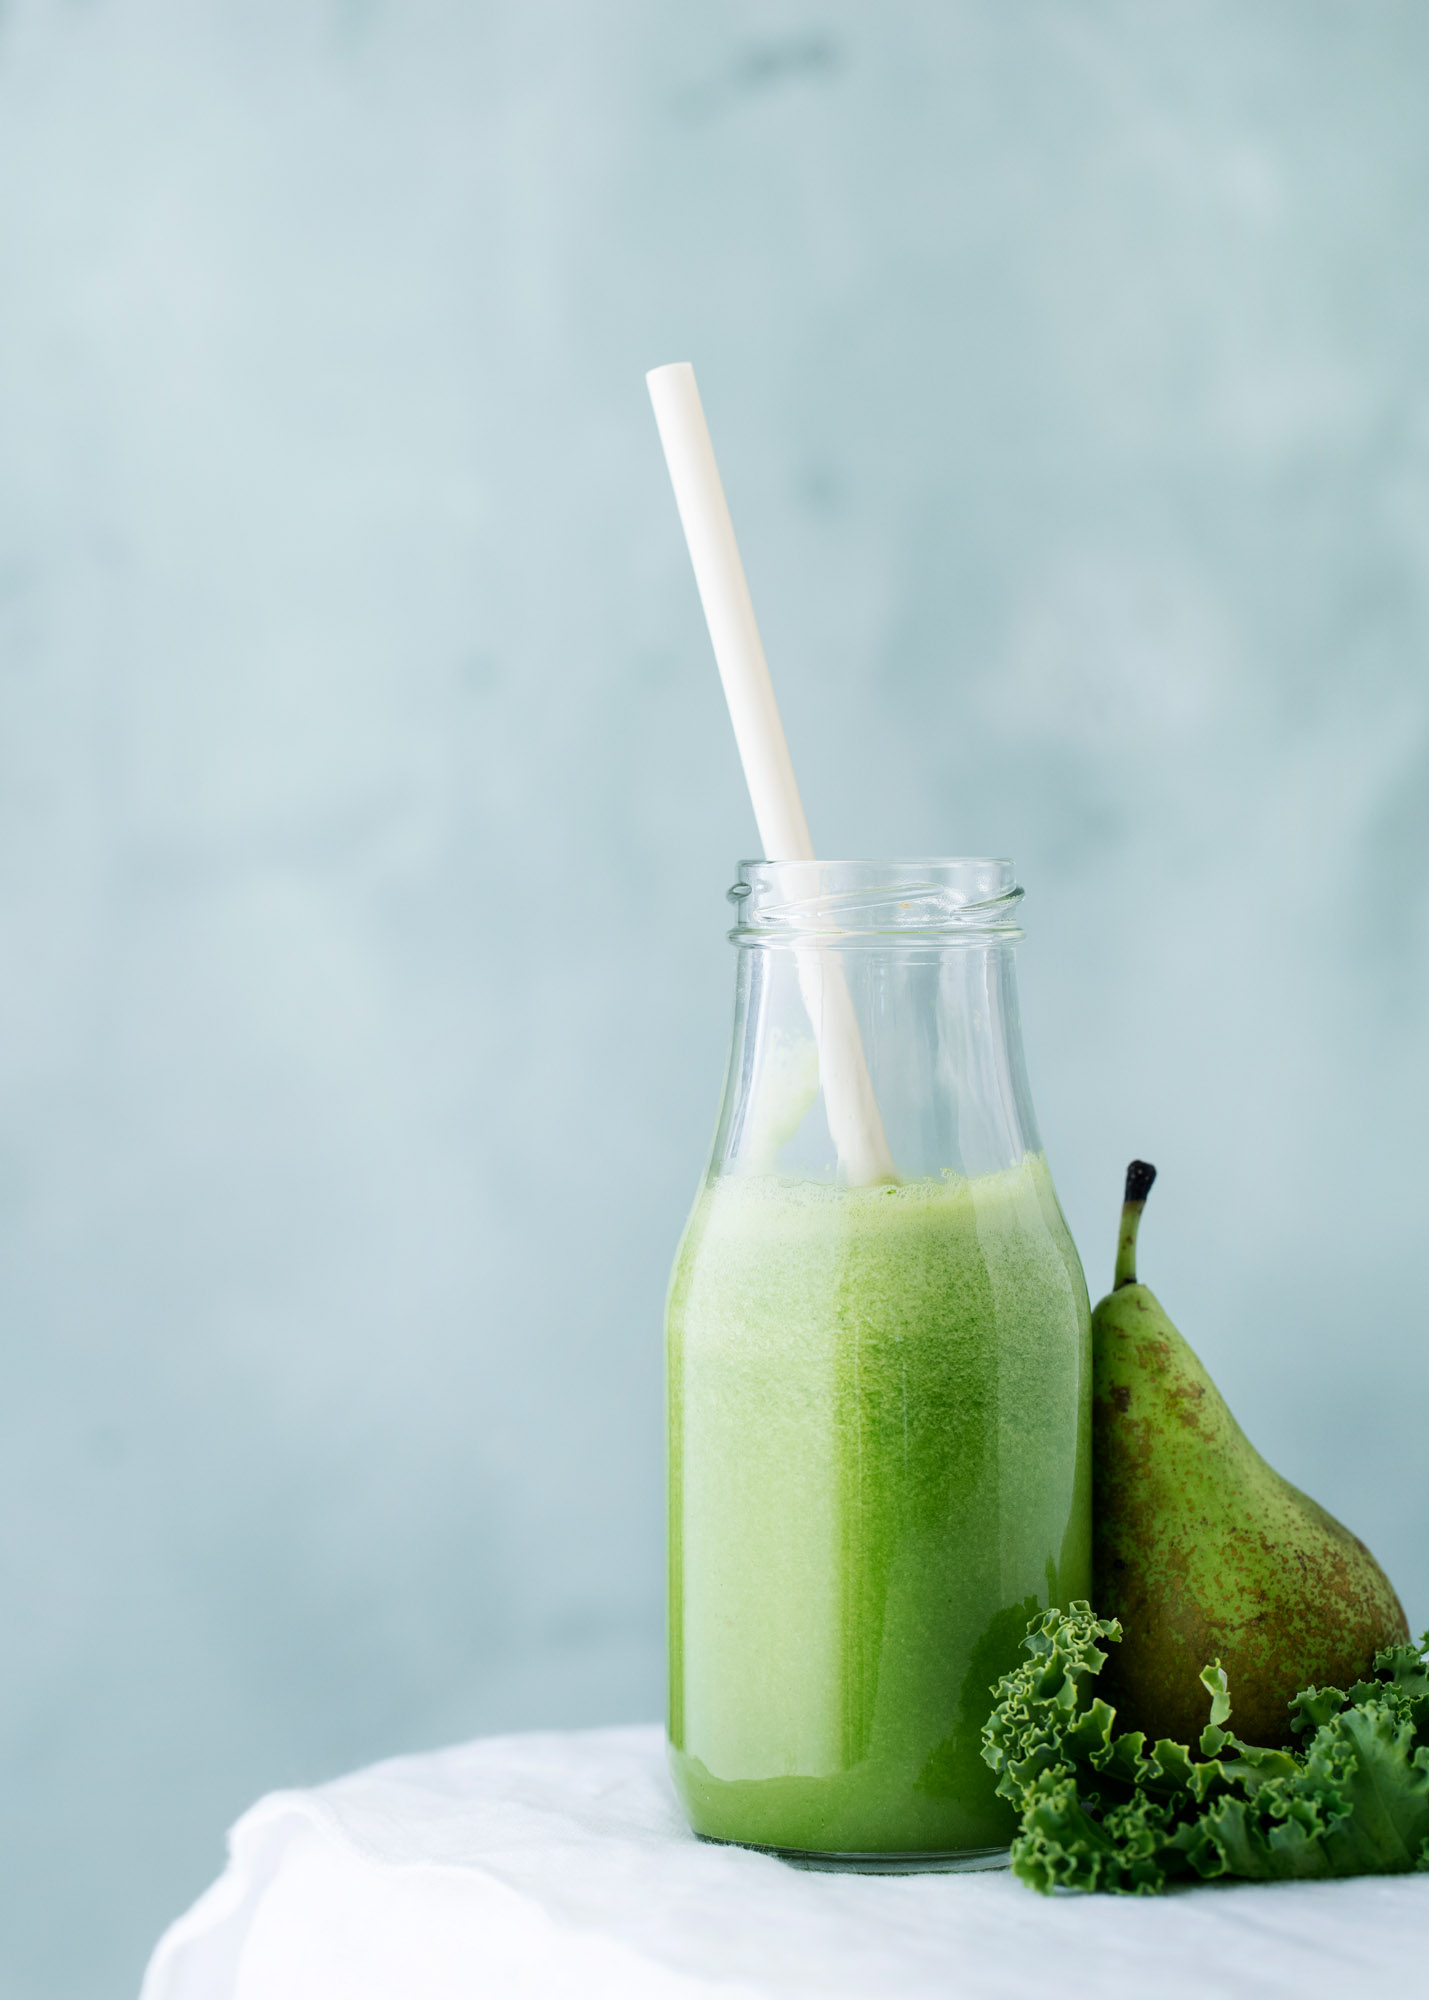 Green Morning with Kale and Pears